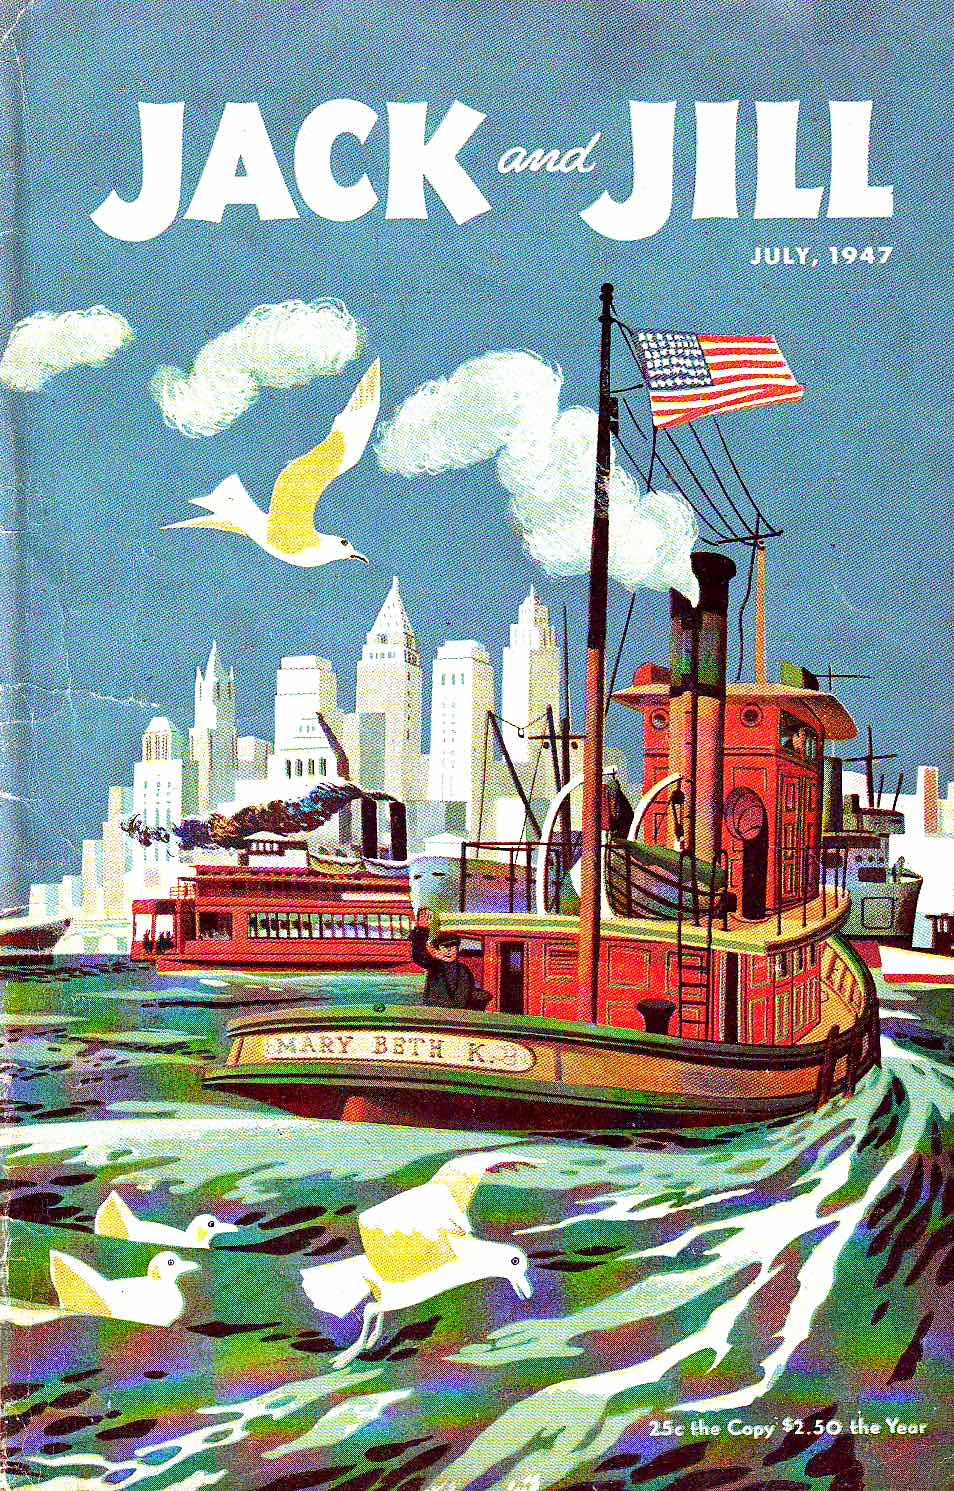 a 1947 children's Jack & Jill by Joe and Beth Krush, a busy urban harbour